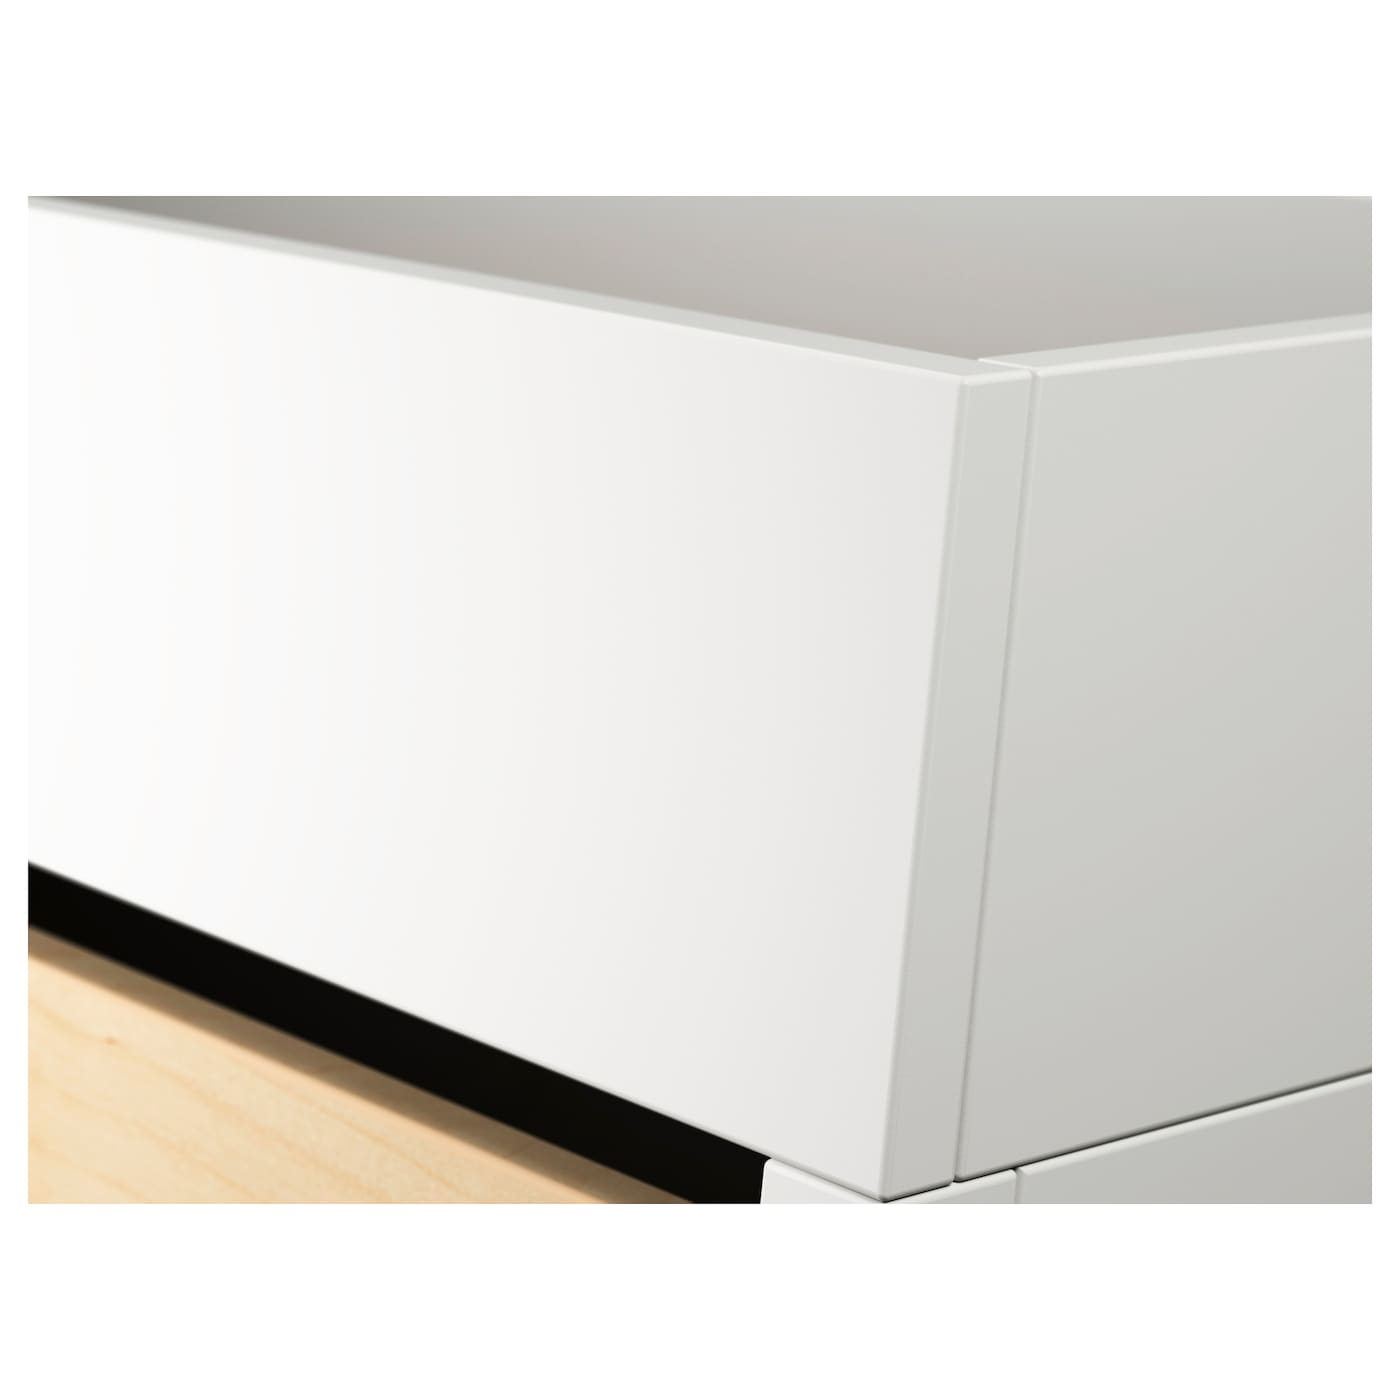 ikea ps 2014 bureau white birch veneer 90x127 cm ikea. Black Bedroom Furniture Sets. Home Design Ideas